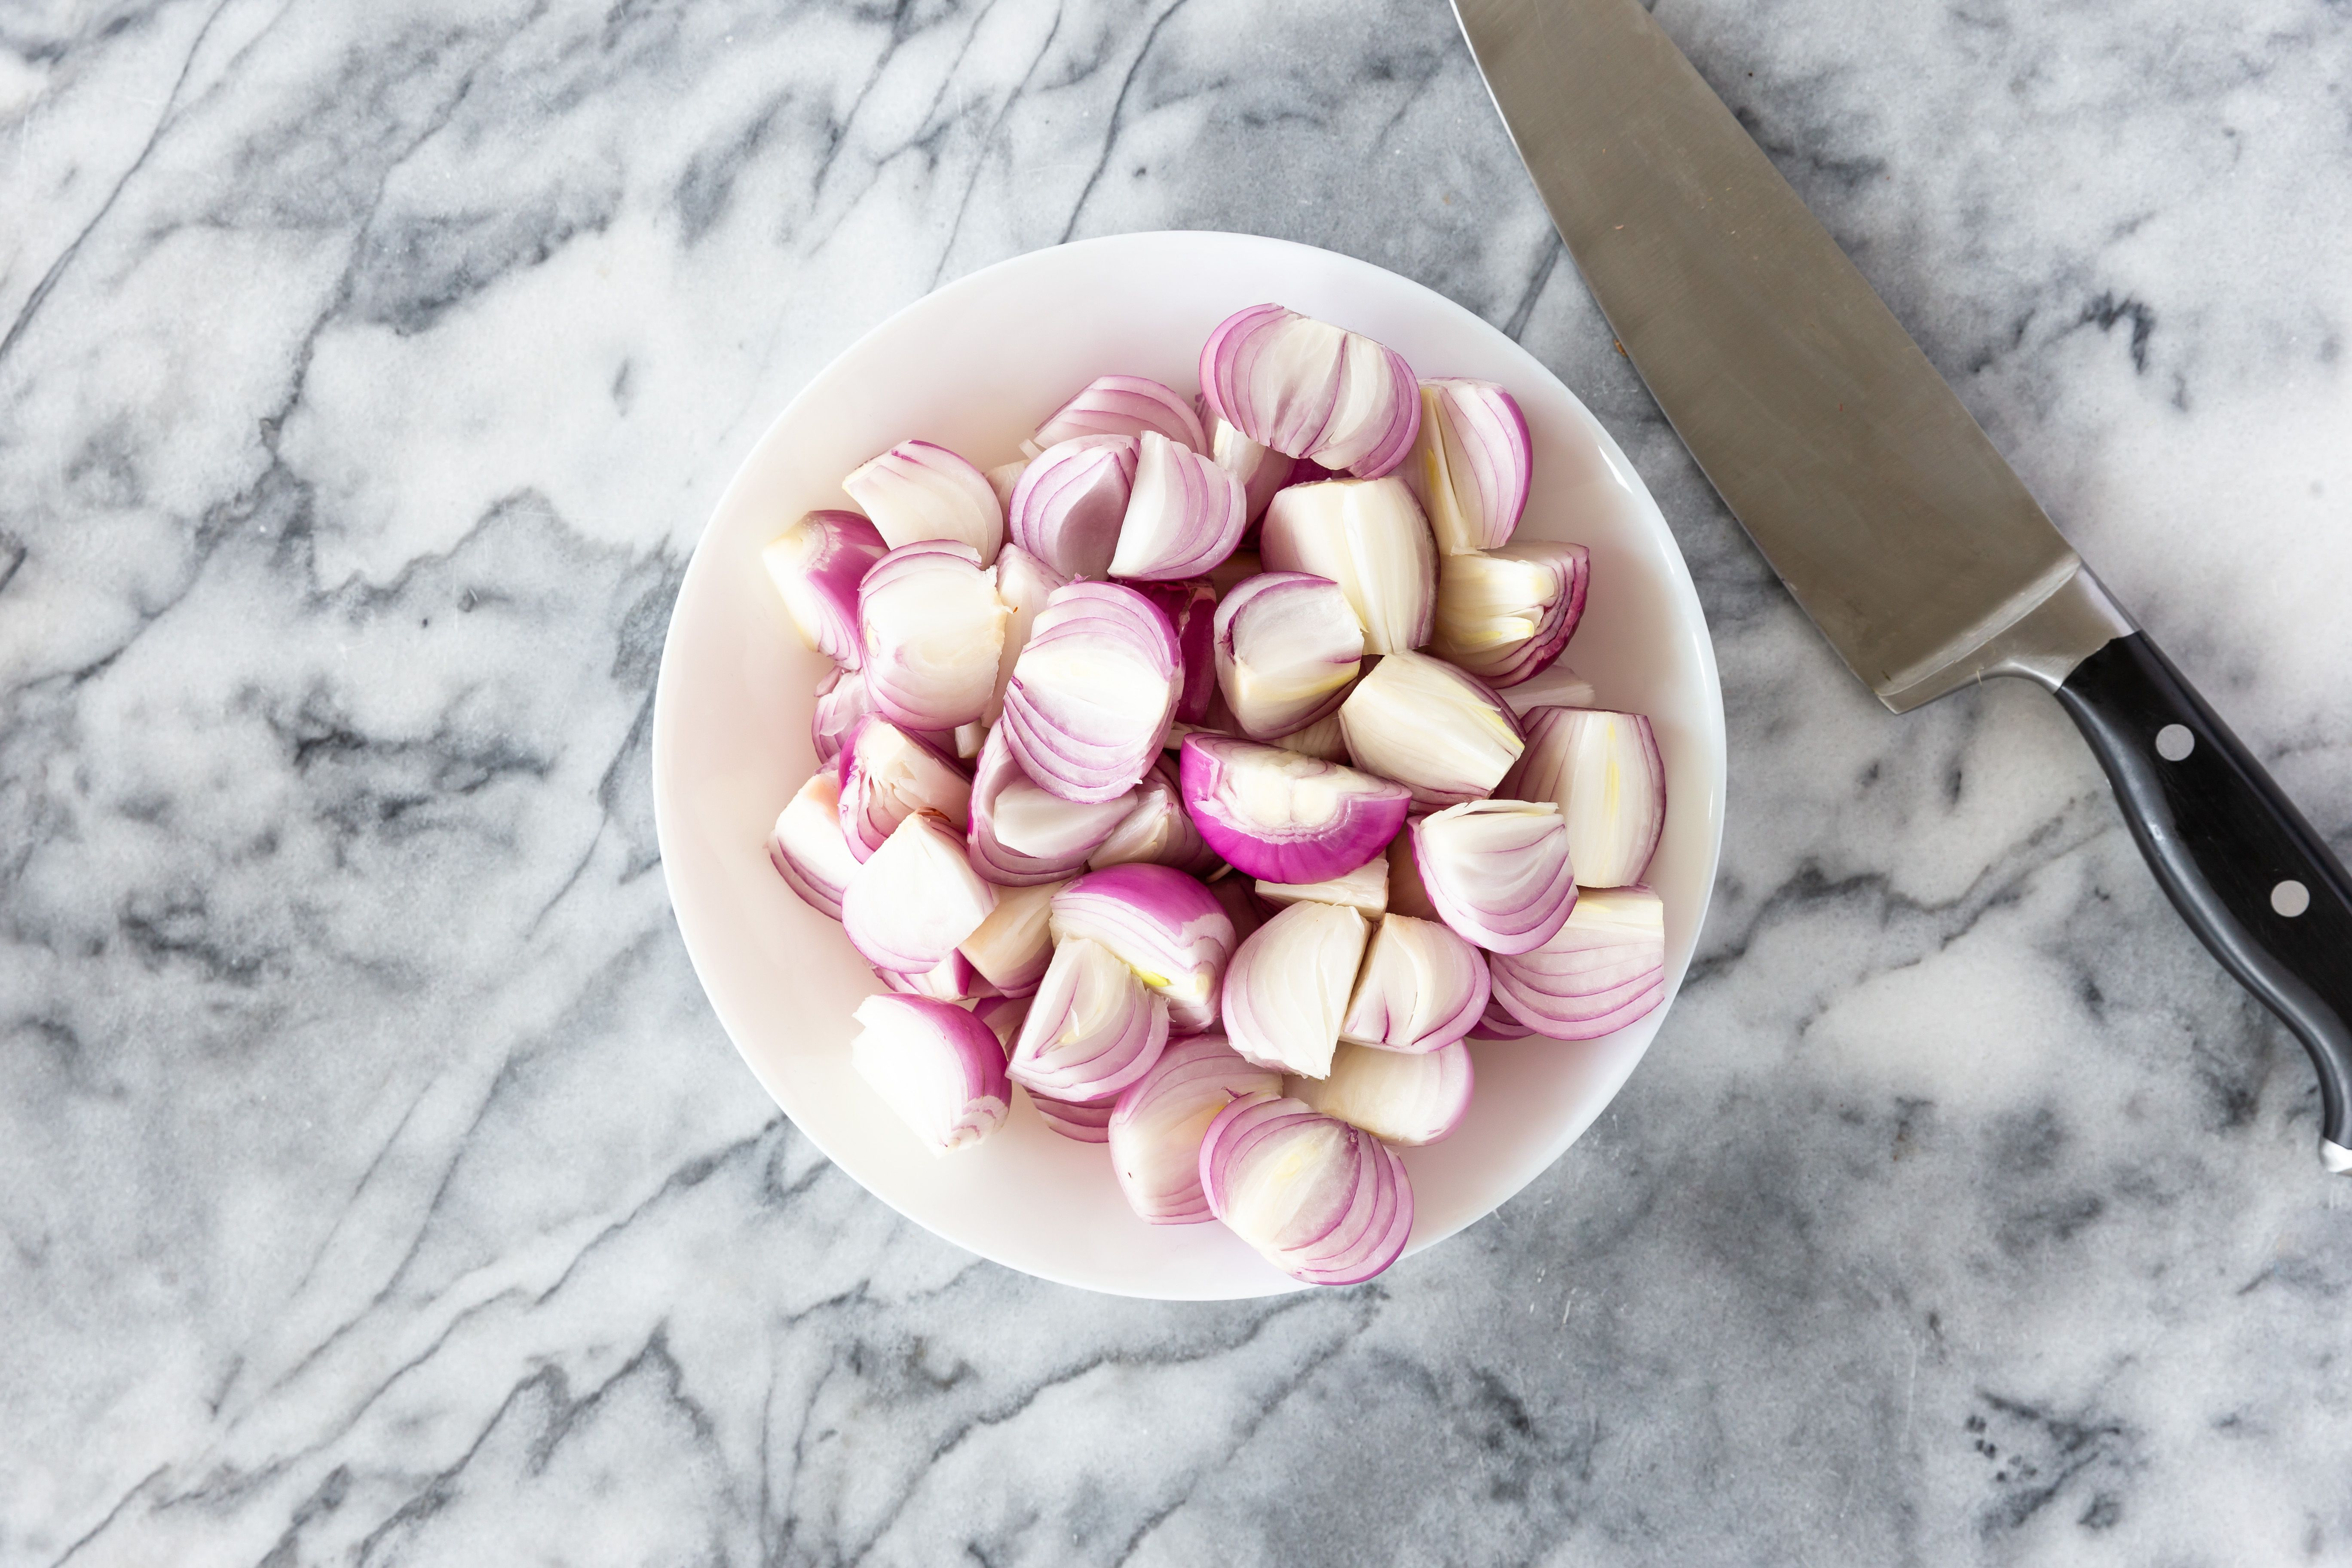 Peeled and halved onions in bowl